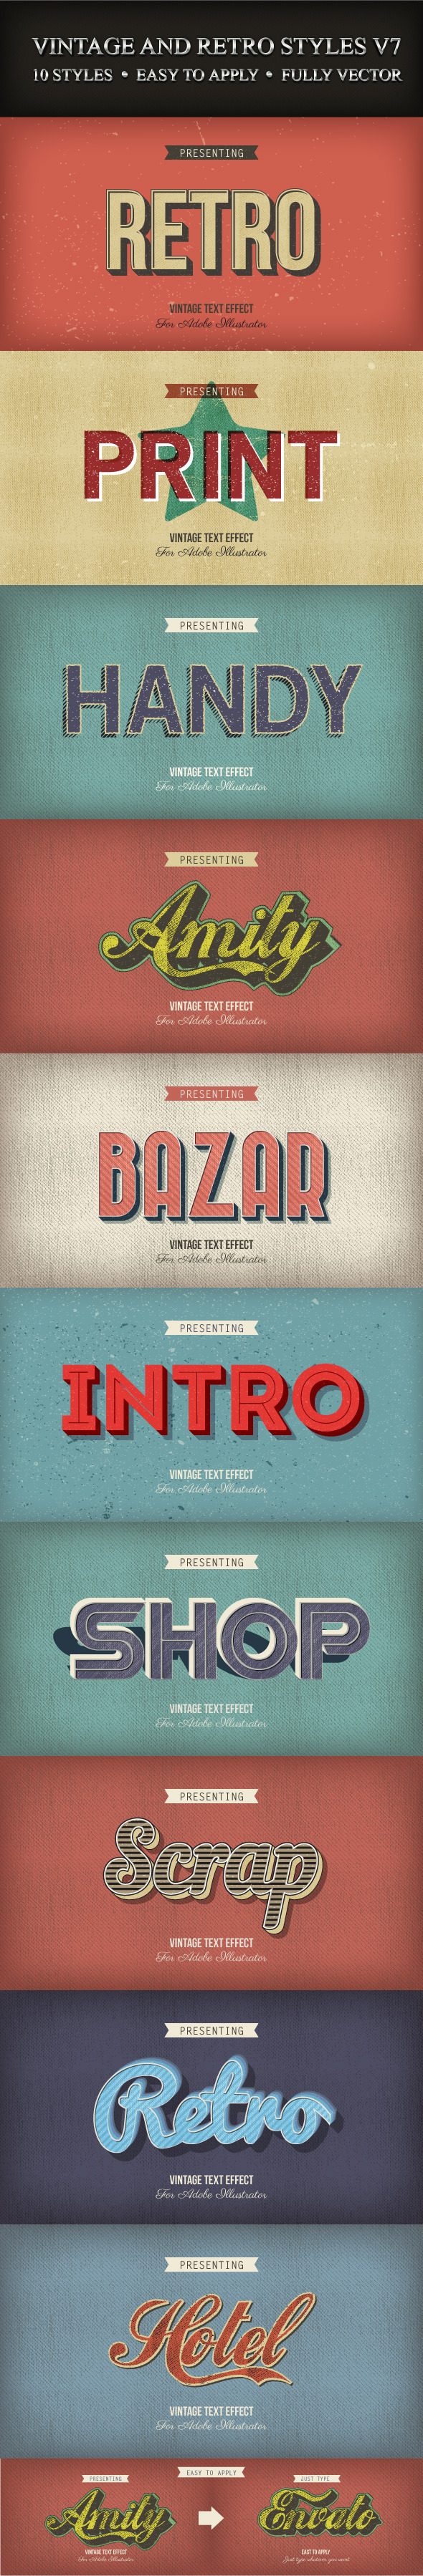 GraphicRiver Vintage and Retro Styles V7 9407343